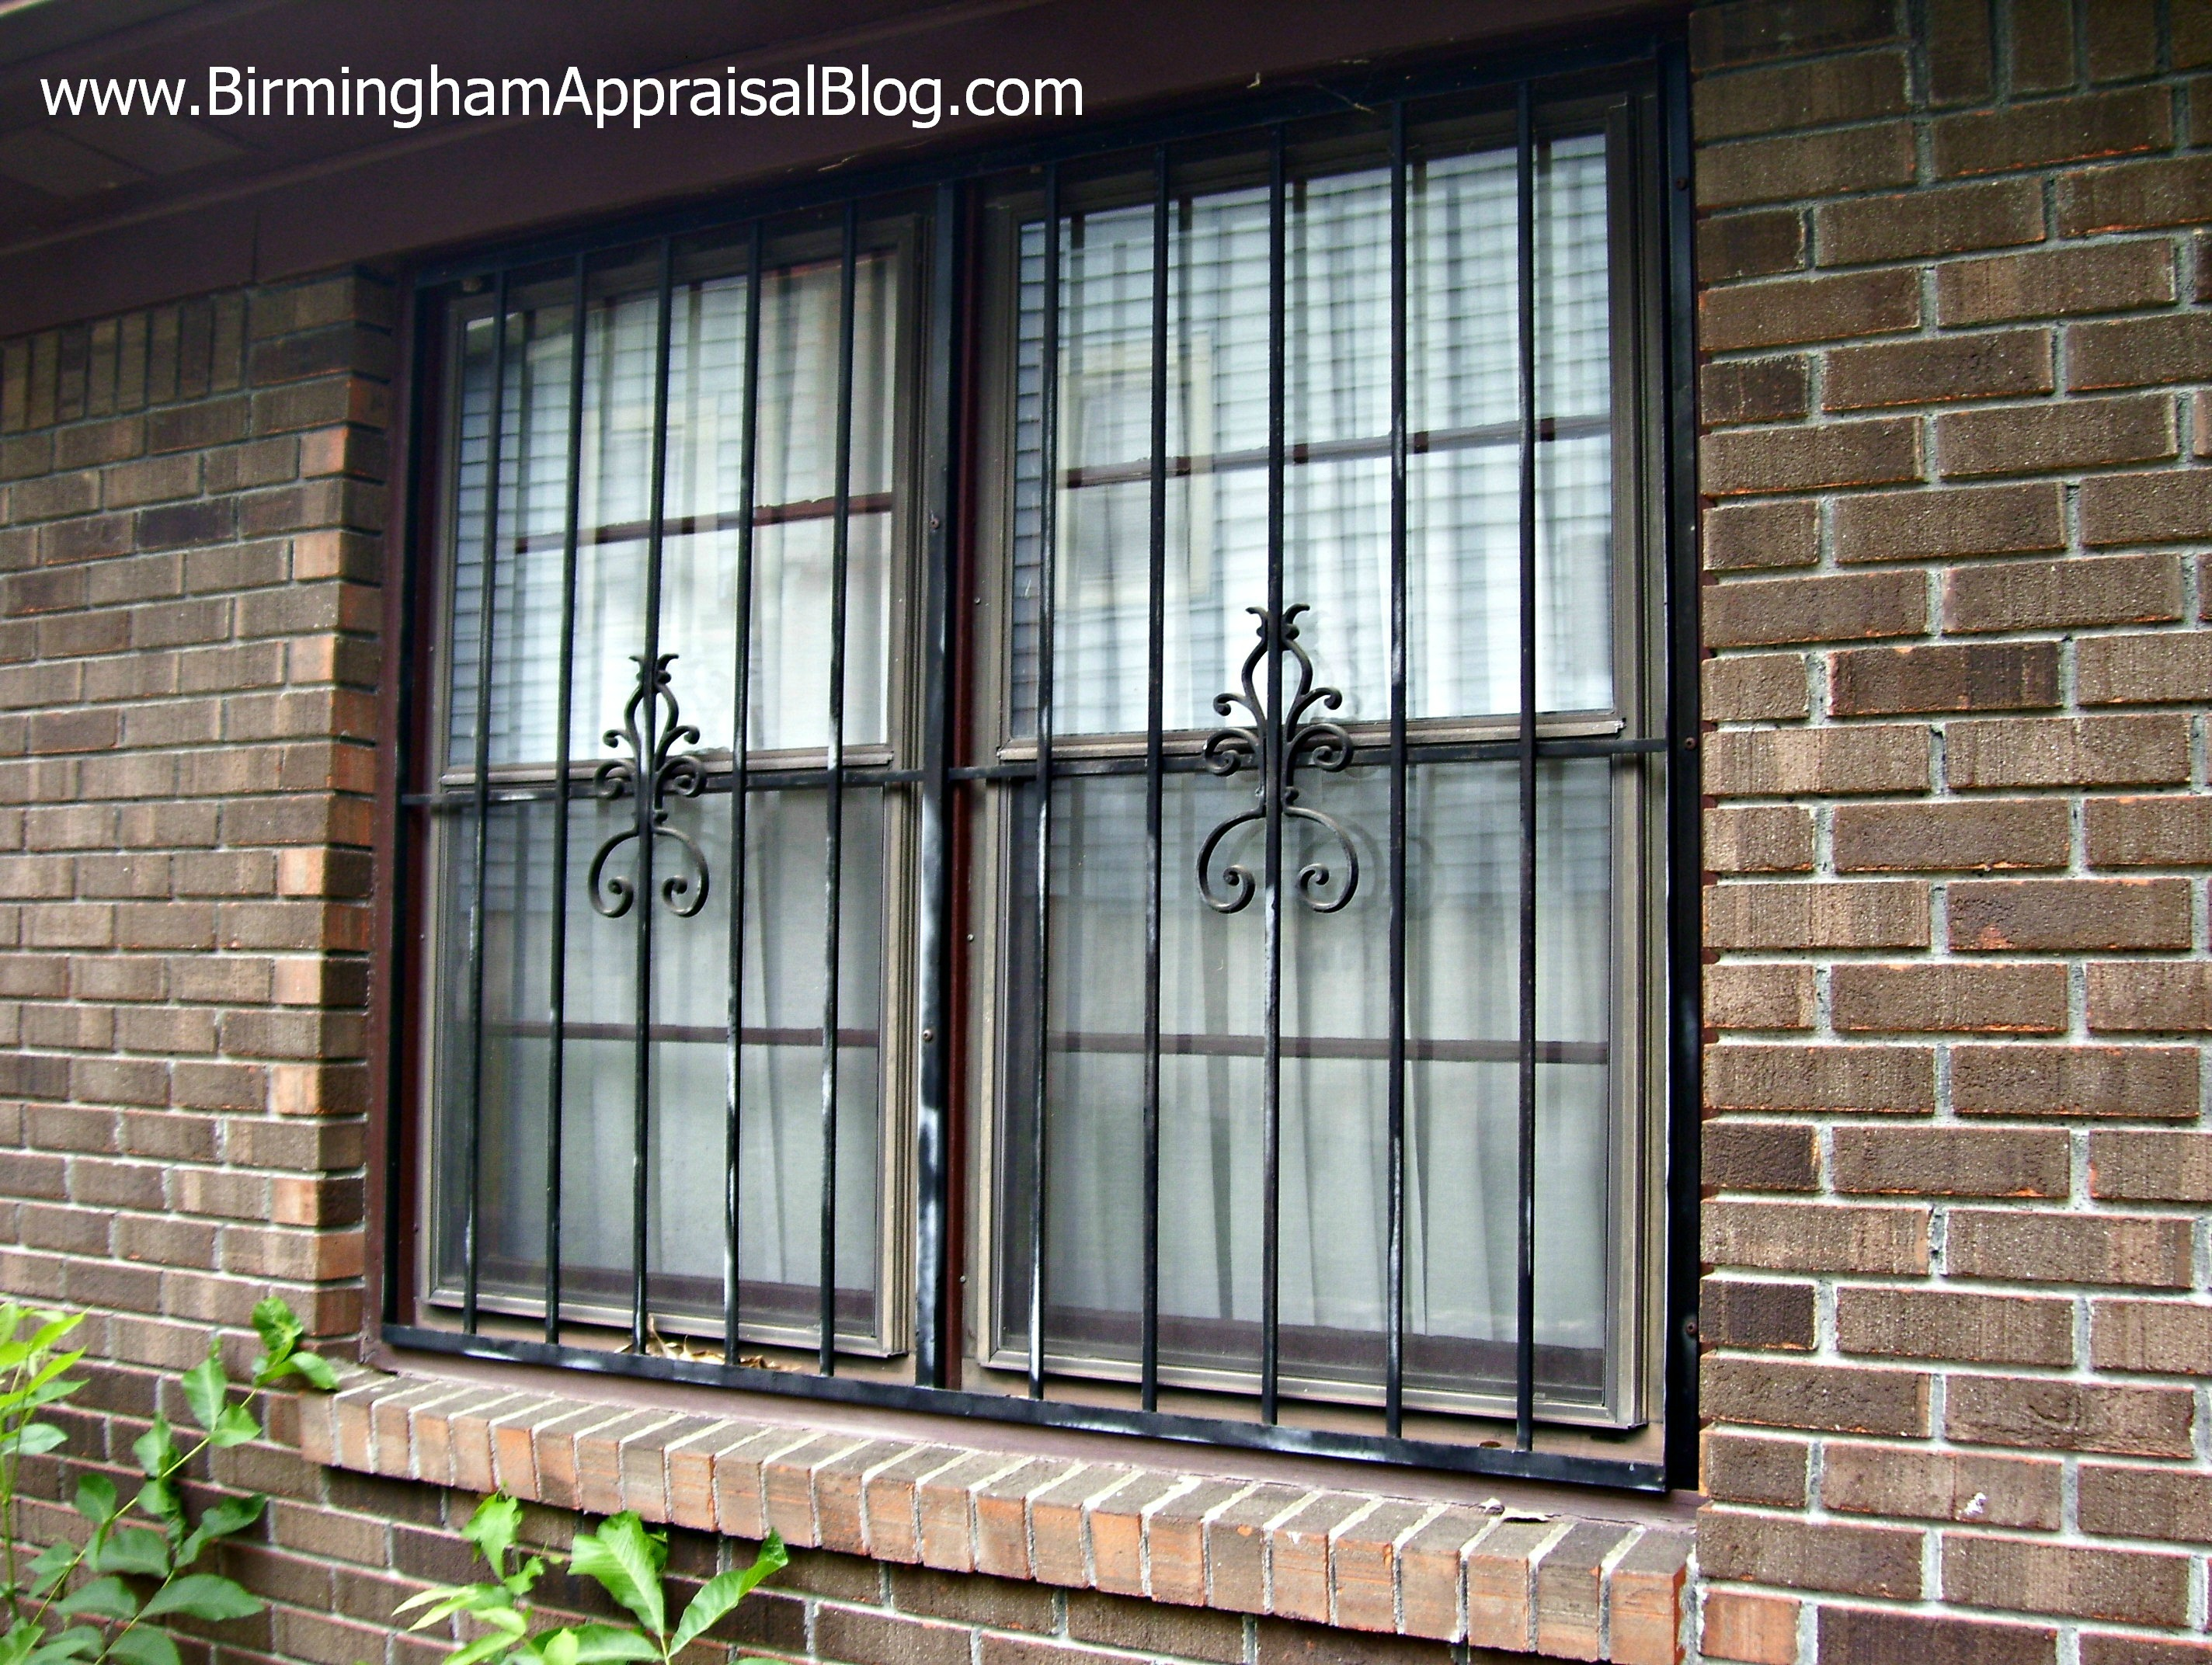 Burglar Bars For Windows : What is the fha rule for security bars birmingham